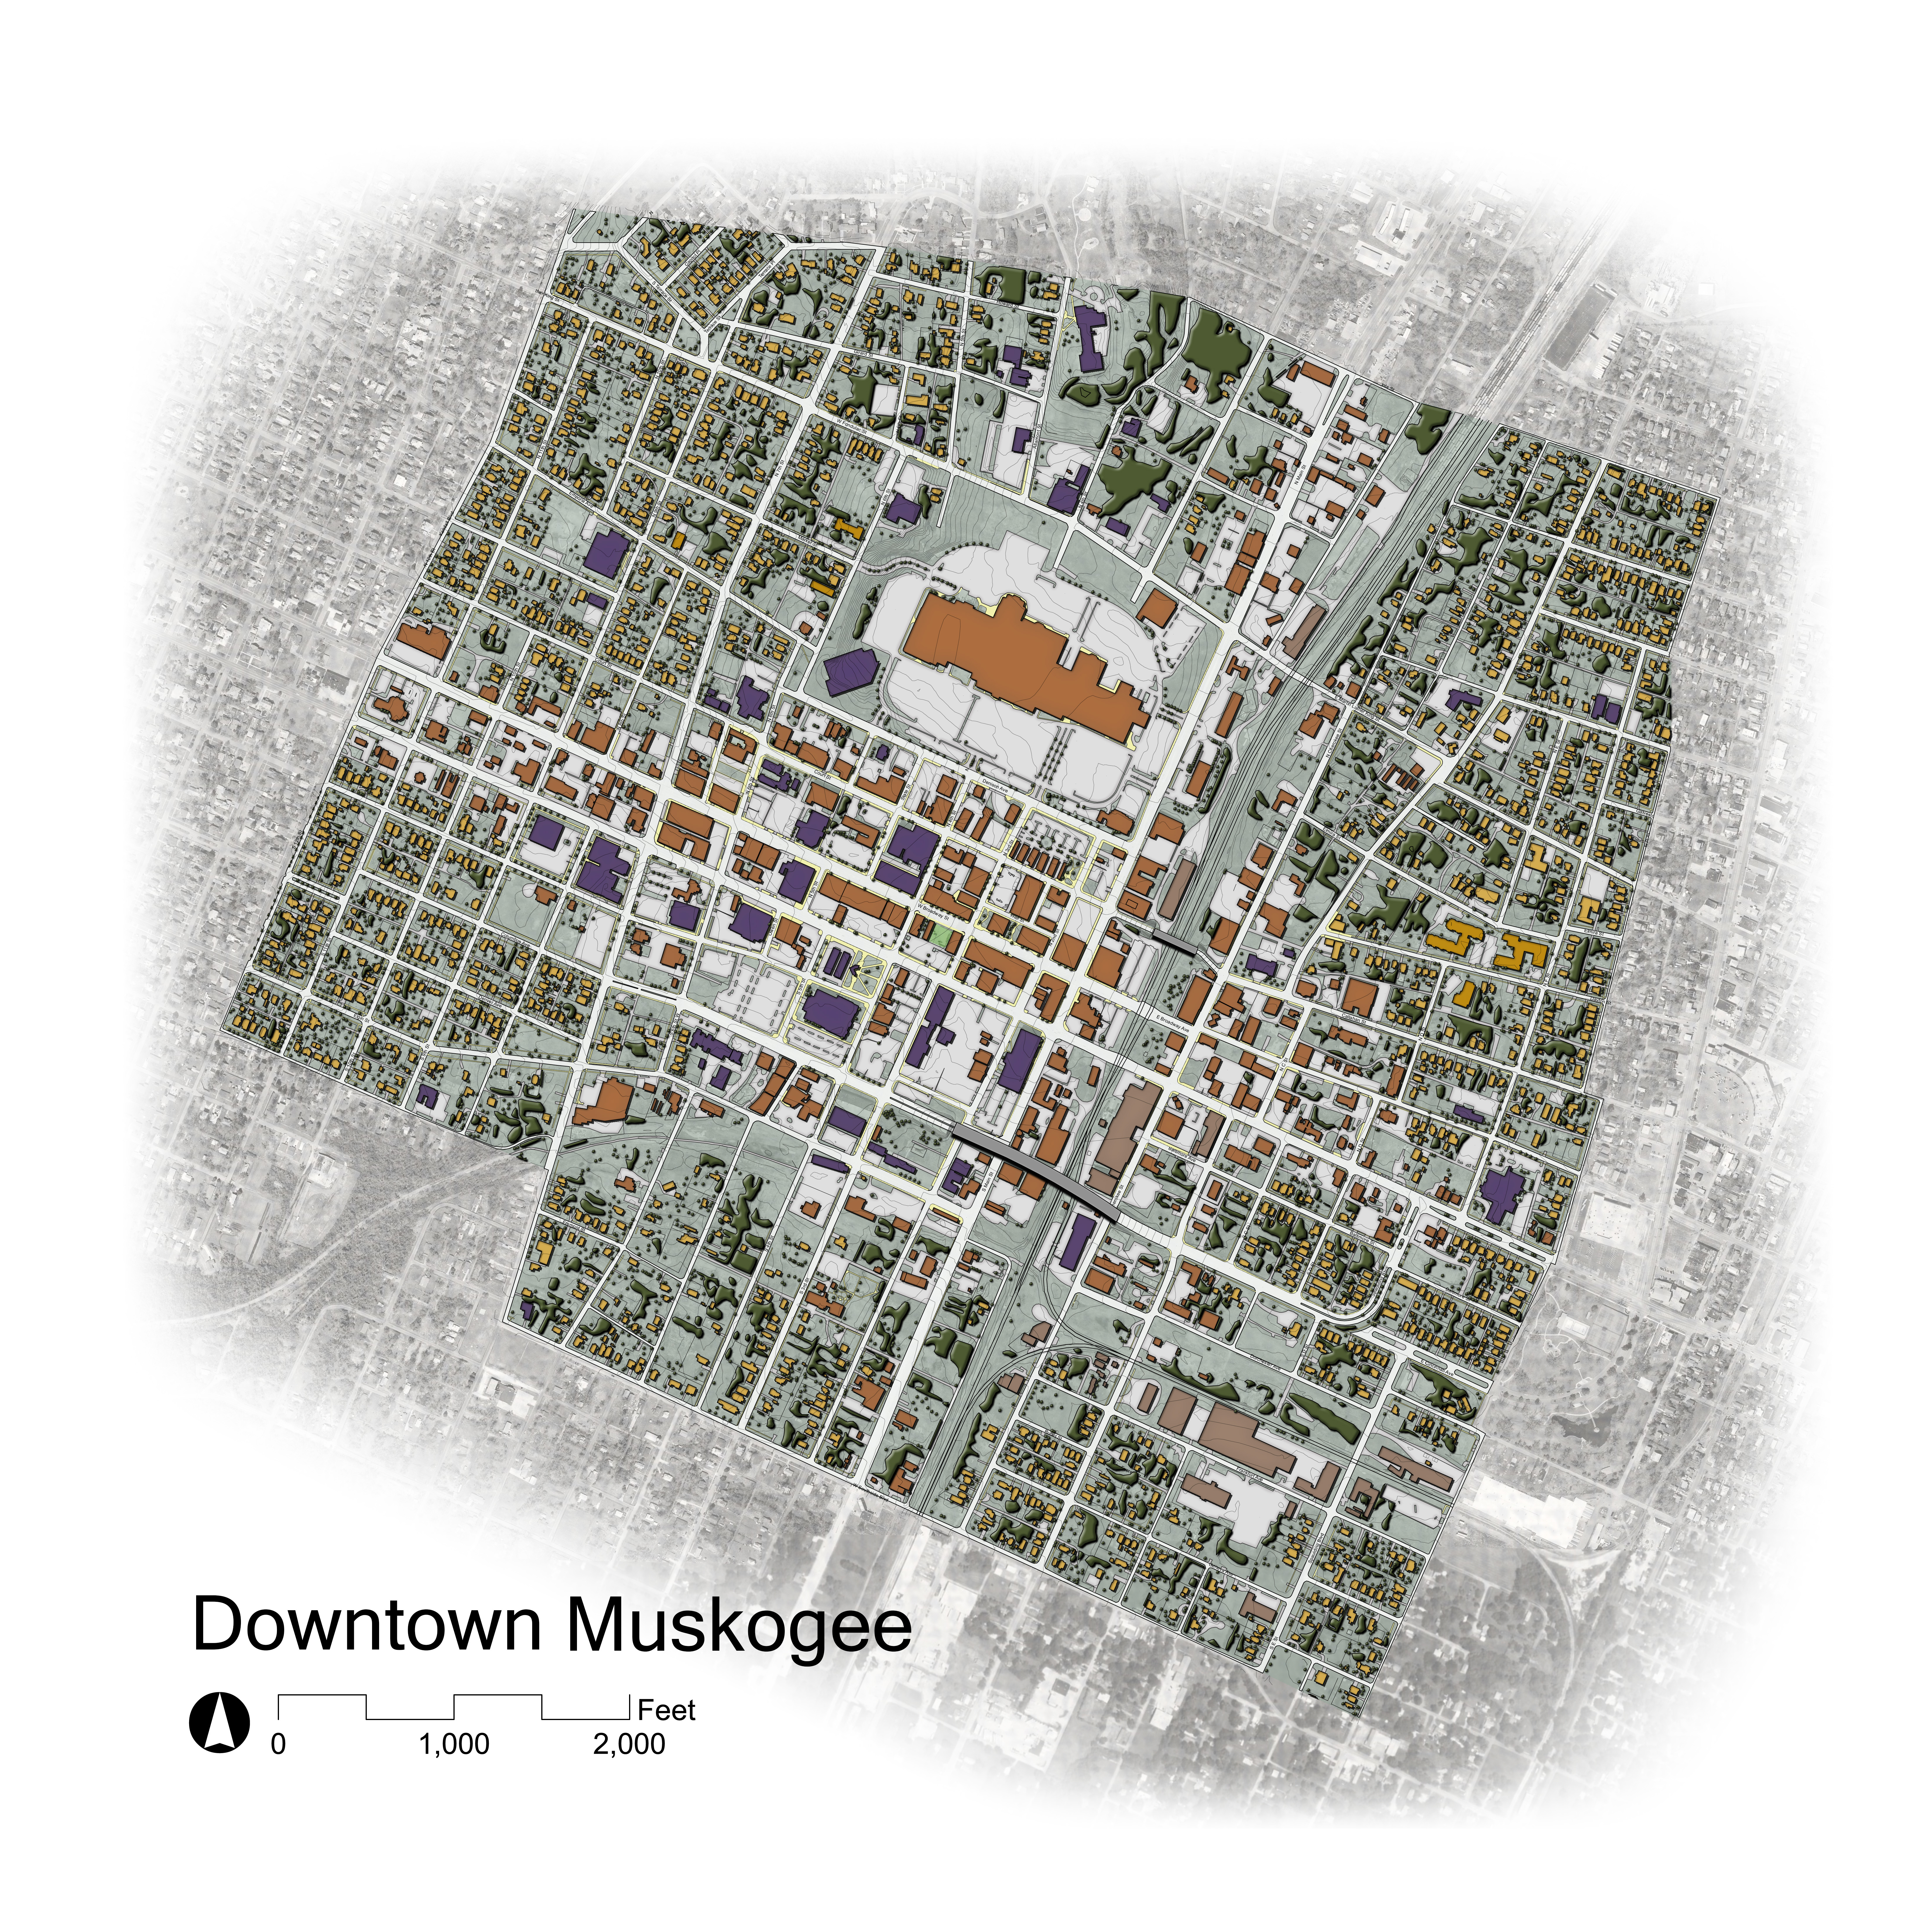 Downtown Muskogee Illustrated Plan